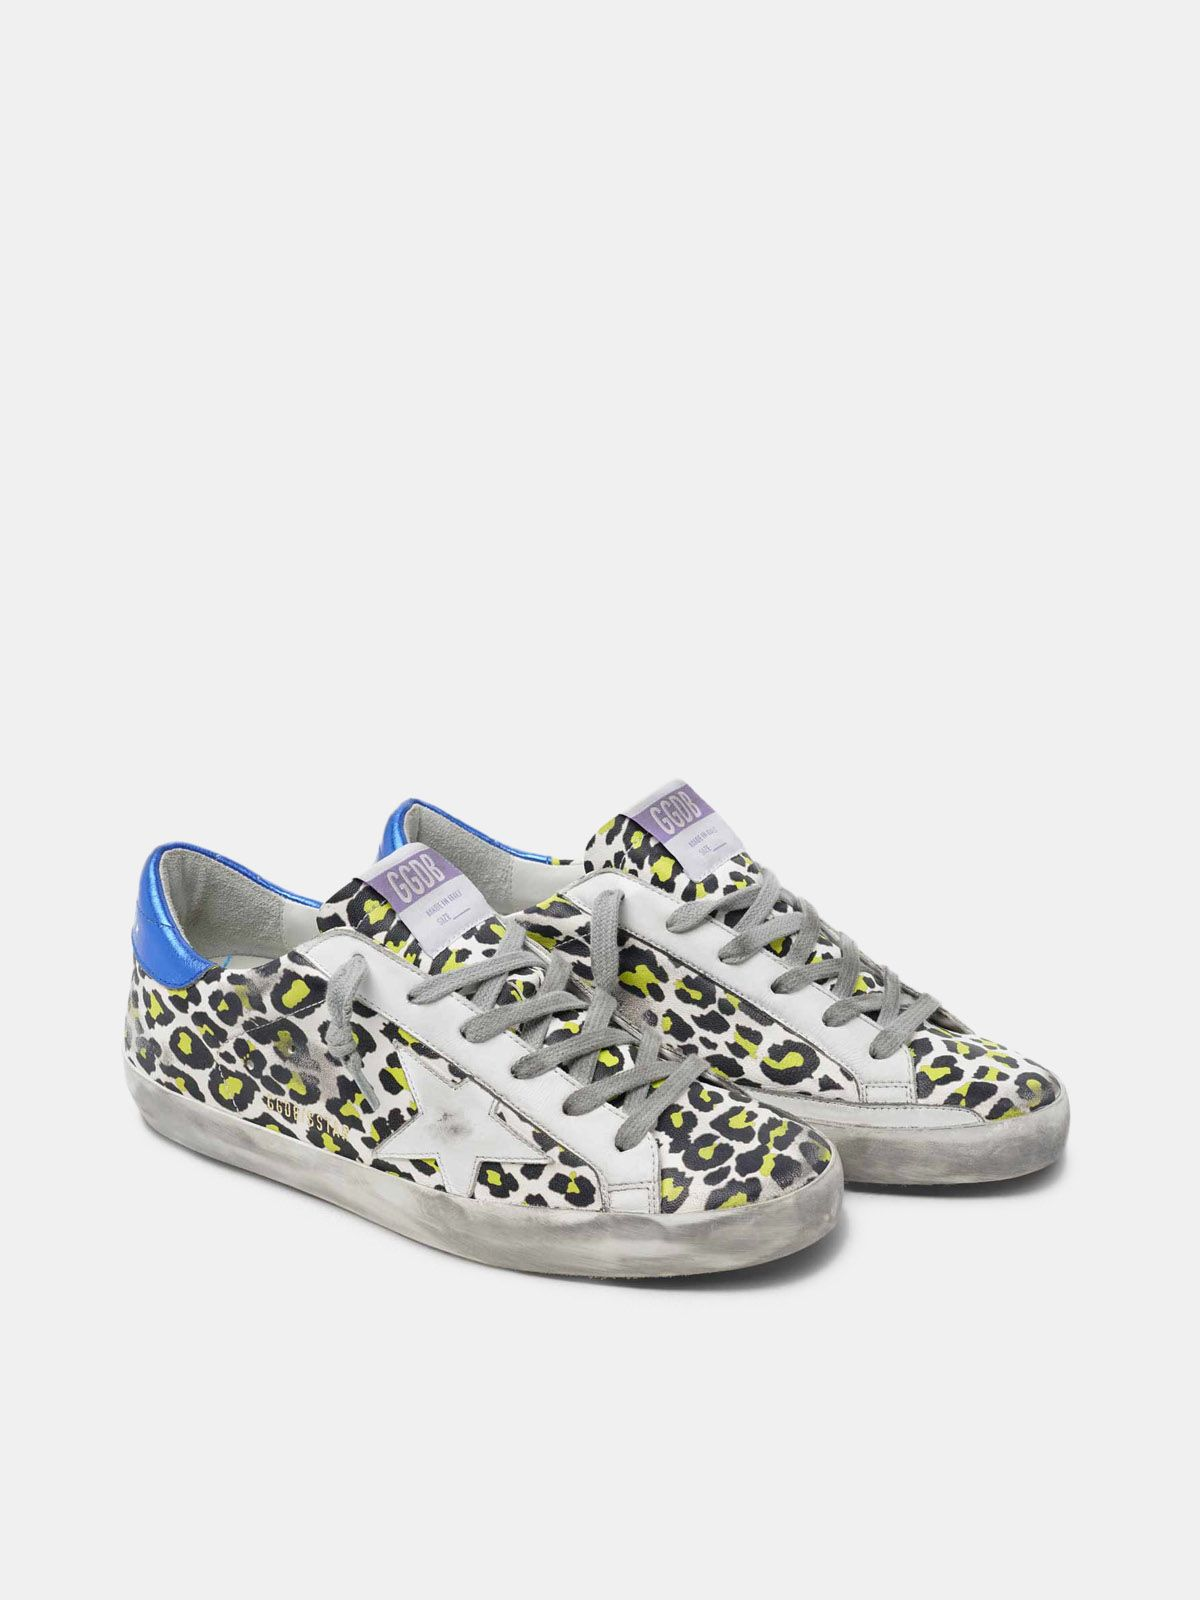 Golden Goose - Animal-print Super-Star sneakers with blue laminated heel tab in